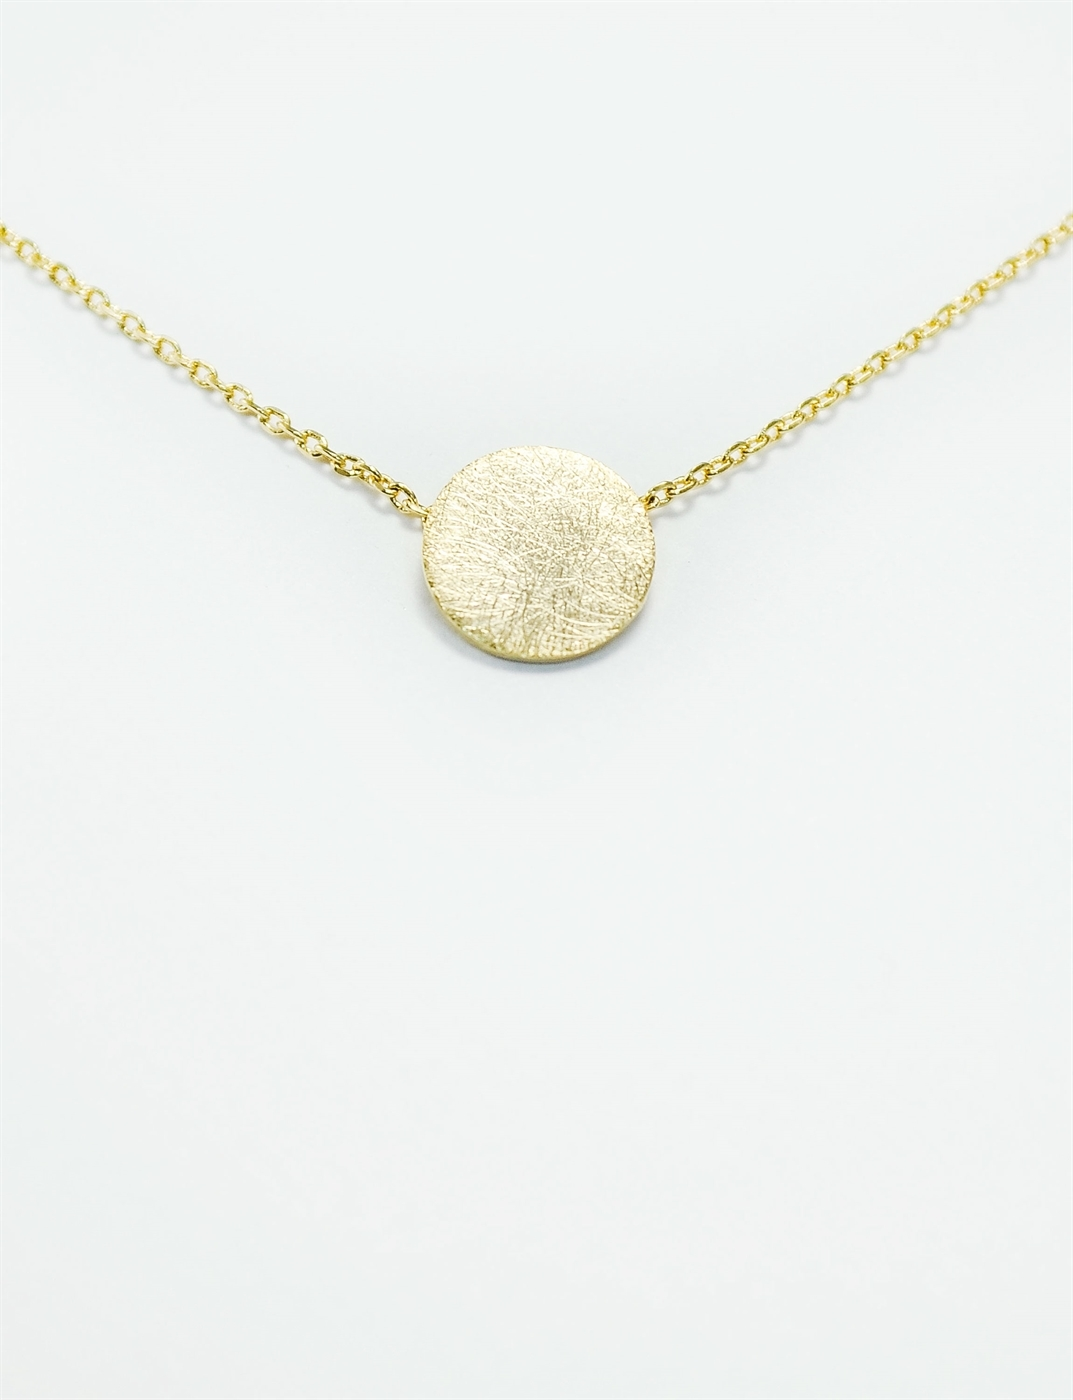 Classic gold circle pendant necklace gold moon necklace minimalist moonnk 77937 z aloadofball Image collections